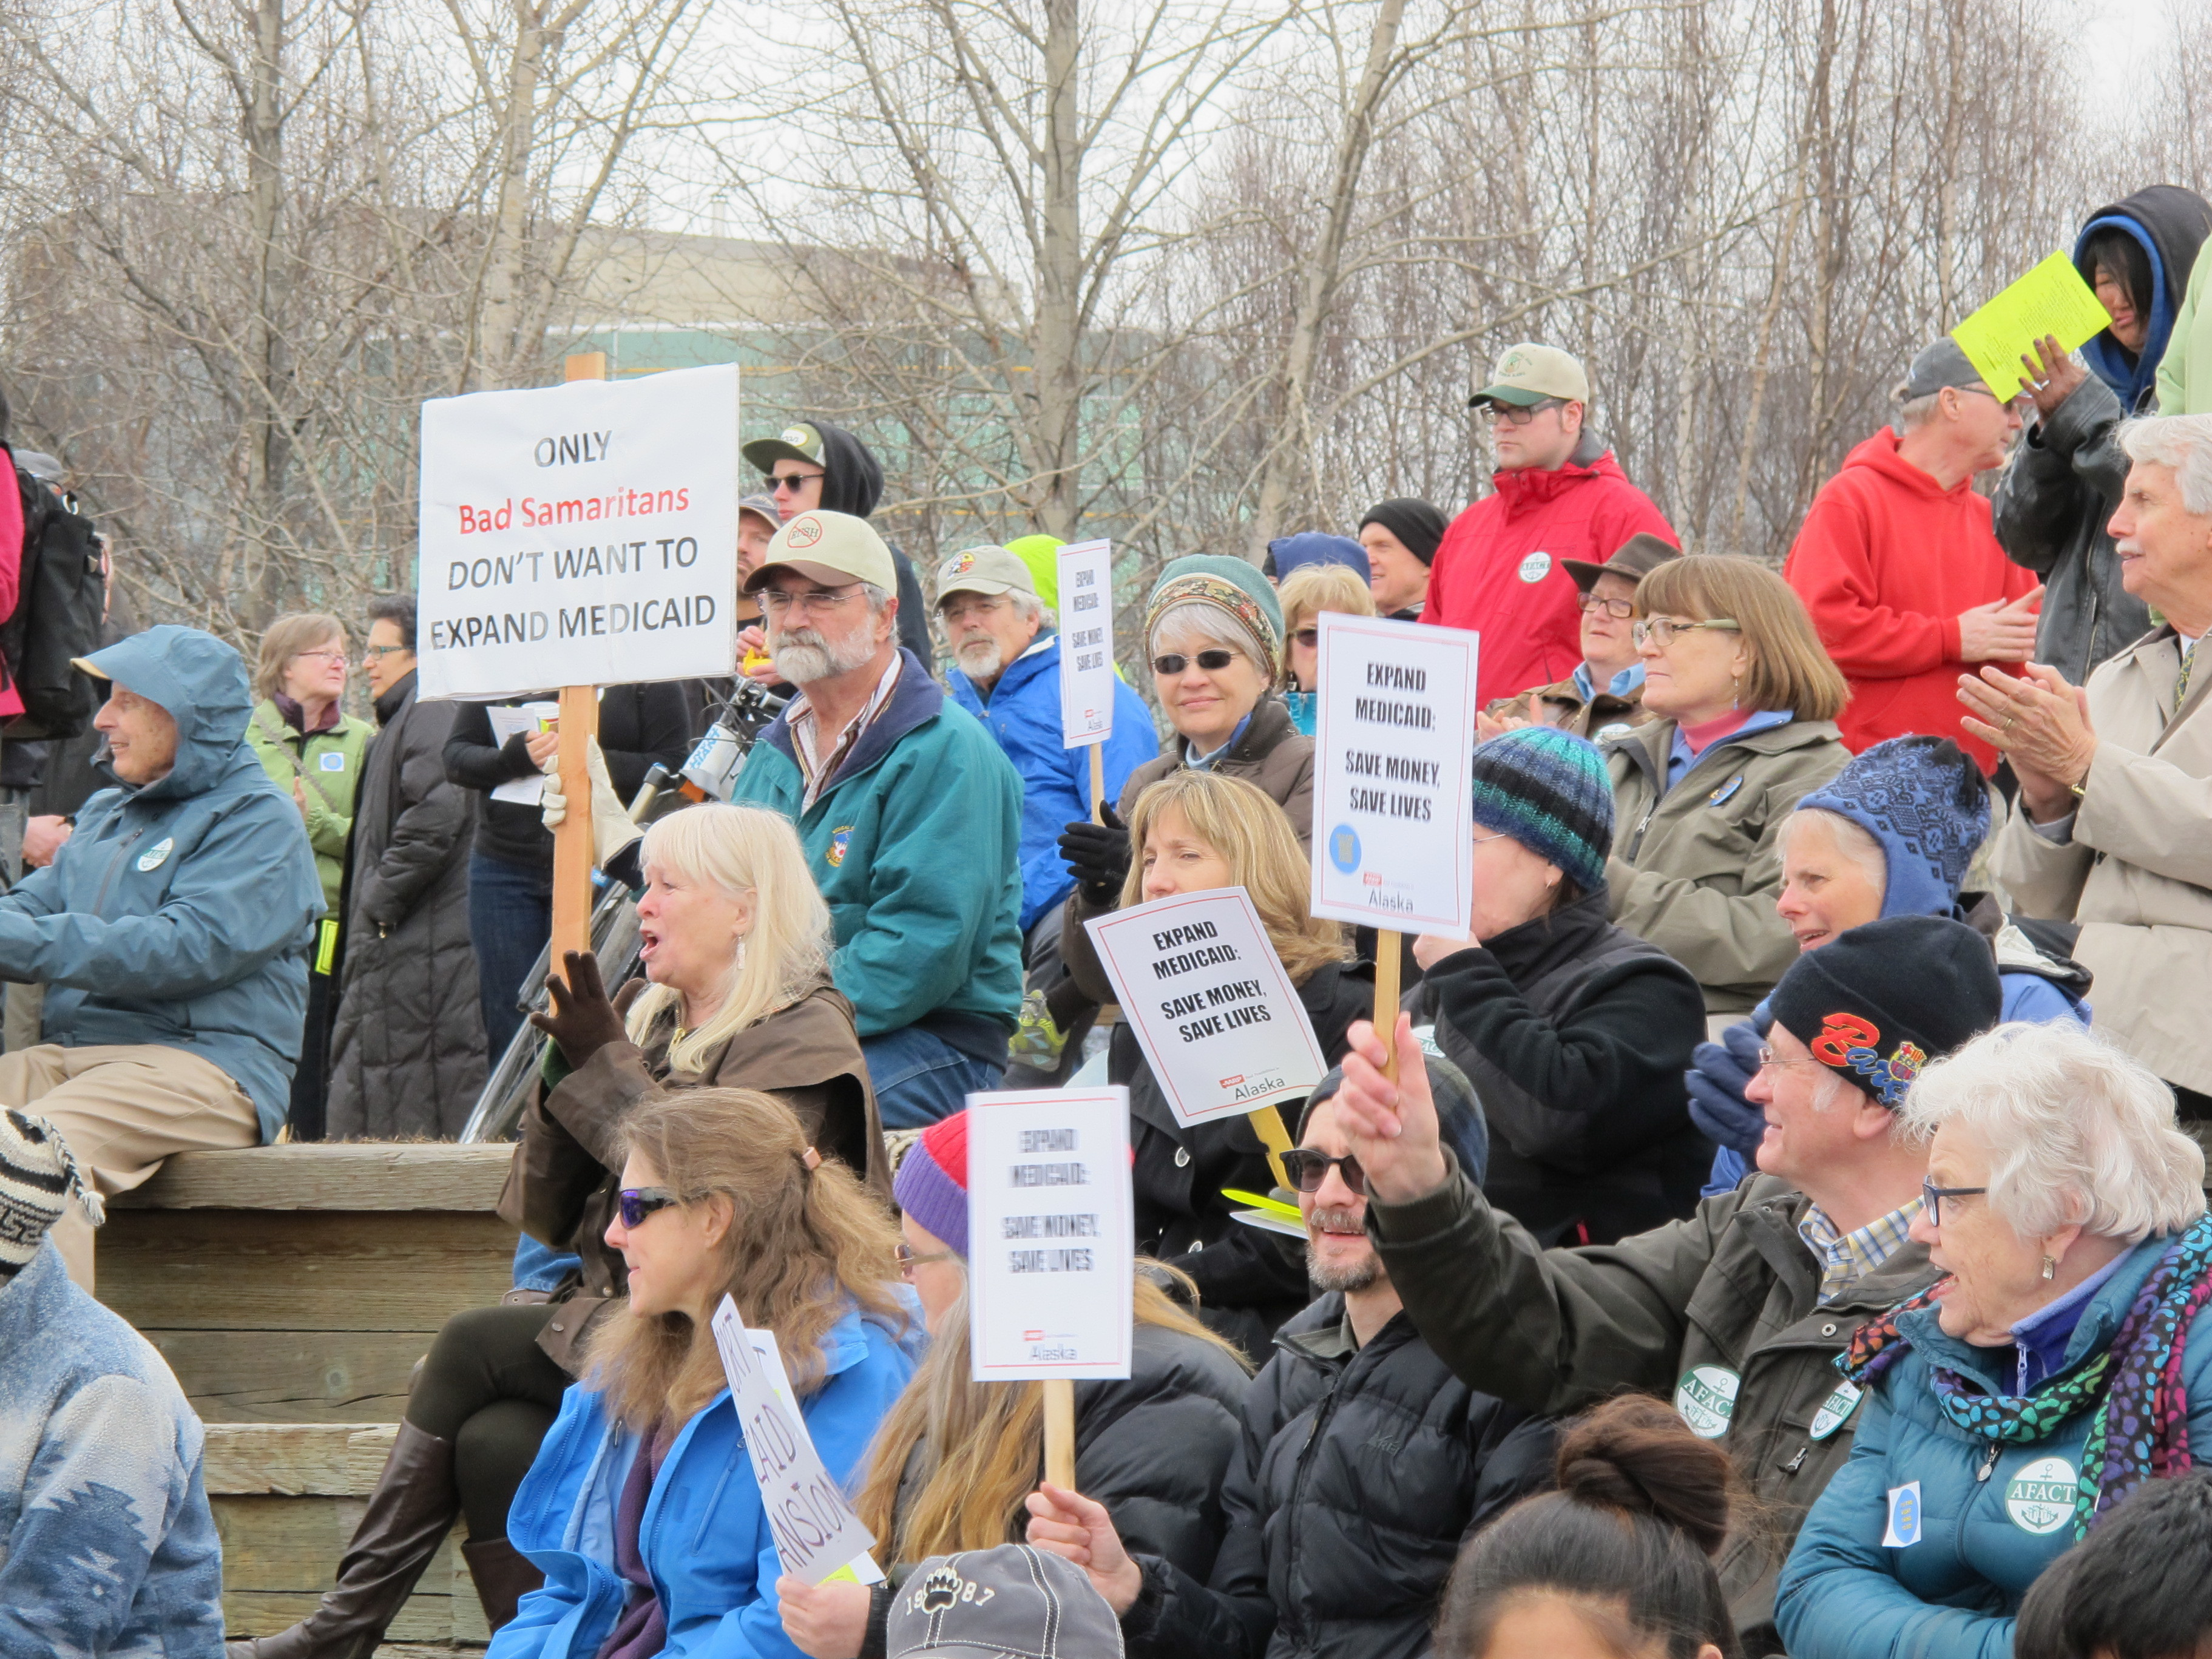 Alaskans attend a rally in Anchorage for Medicaid expansion. (Jonathan Casurella/Alaska Public Media)